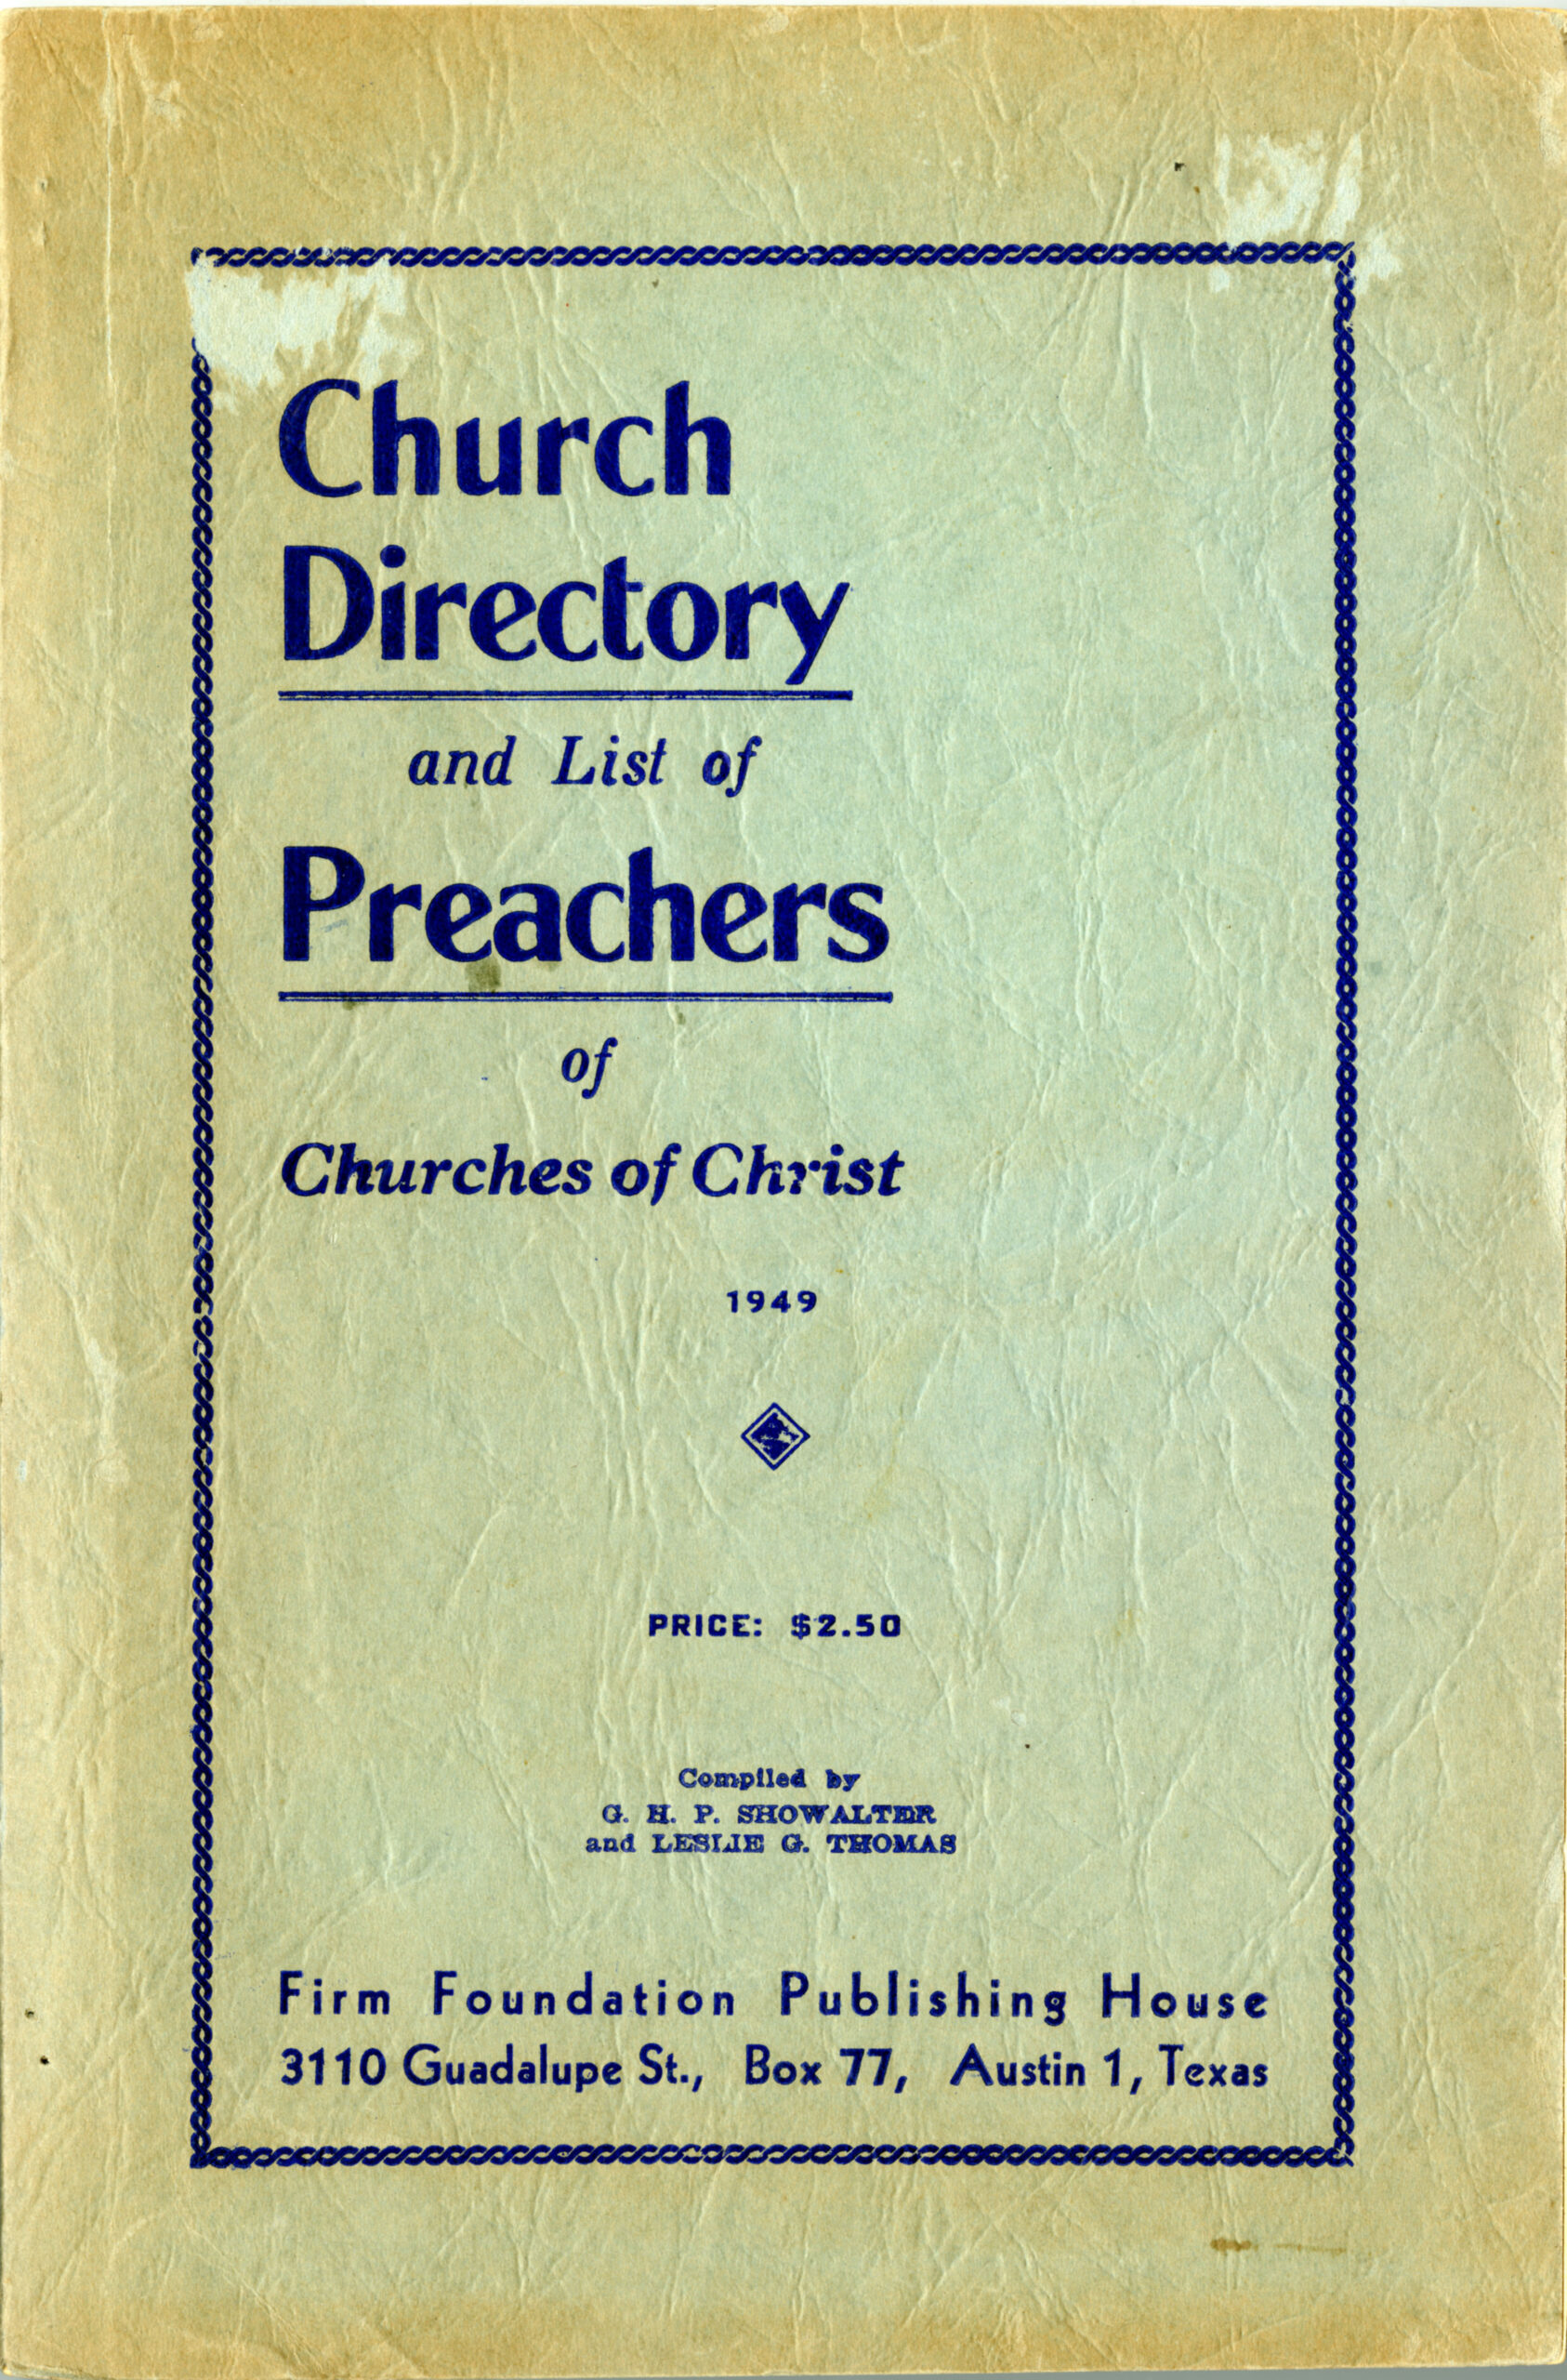 G. H. P. Showalter and Leslie G. Thomas, Church Directory and List of Preachers of Churches of Christ(1949). https://digitalcommons.acu.edu/crs_books/577